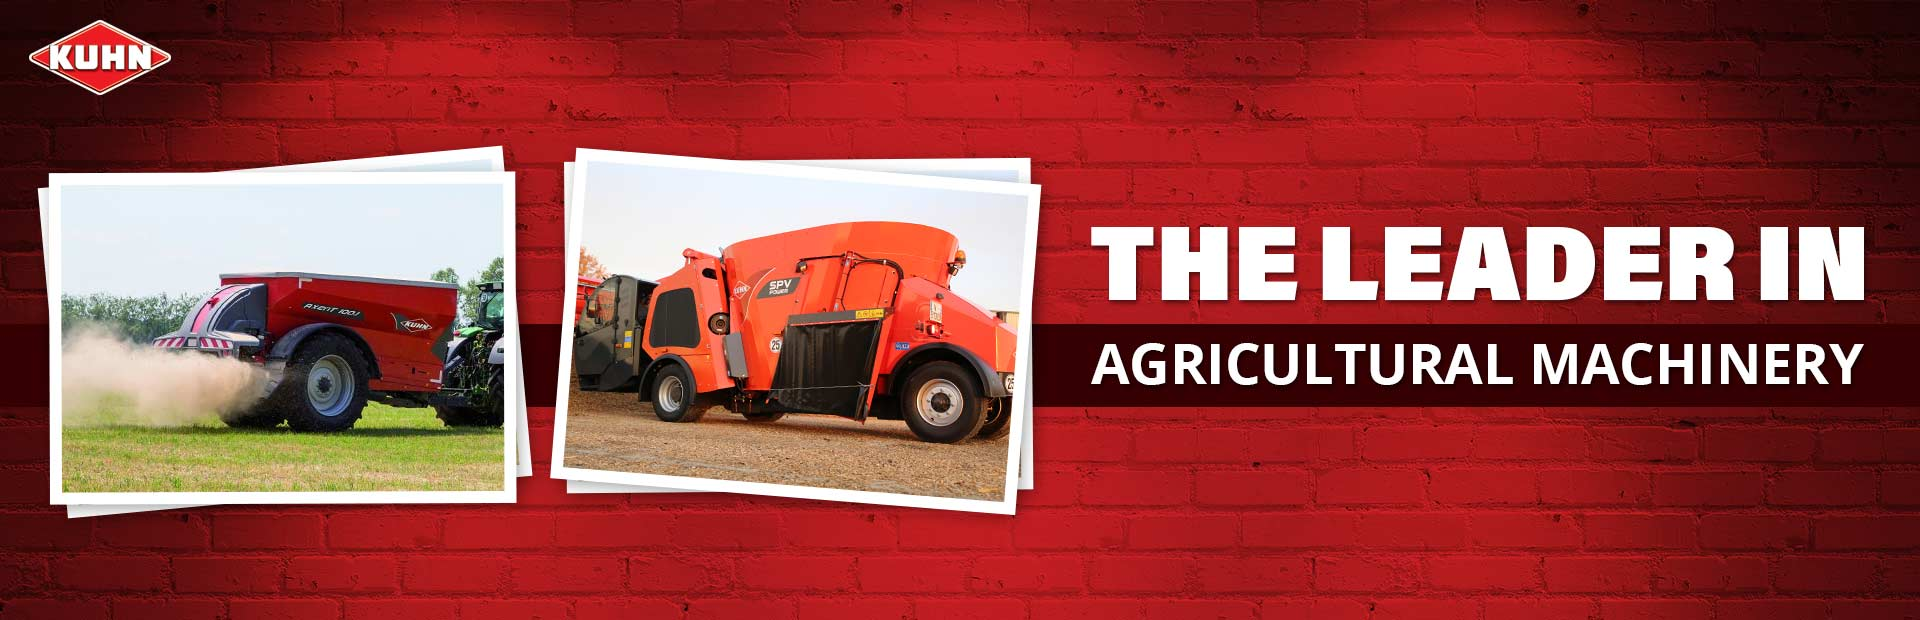 Kuhn: The Leader in Agricultural Machinery